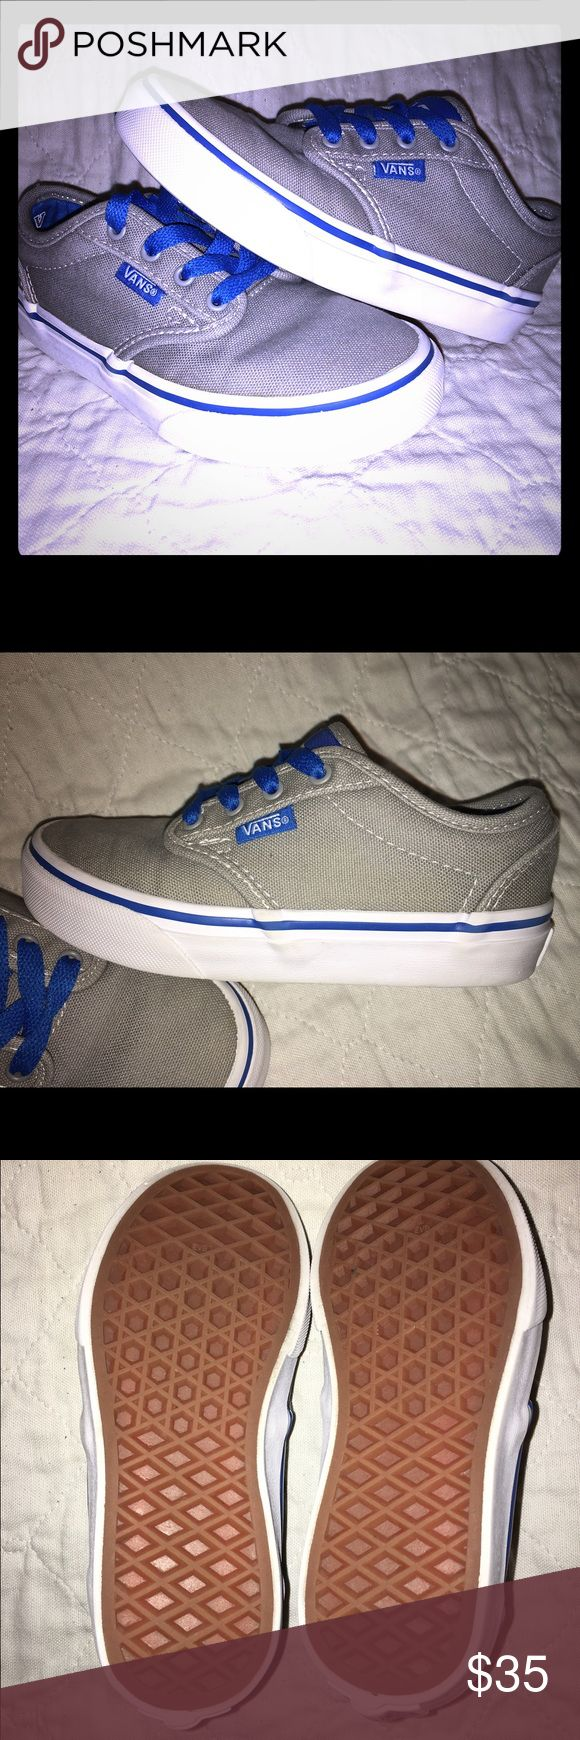 Boys Vans size 12C like new Like new boys Vans. Barely worn but maybe 5 times. As you can tell in the pictures. Wonderful shoes I think they are wonderful my son just never really wore them. Feel free to bundle up with my other boys shoes and make an offer. Vans Shoes Sneakers